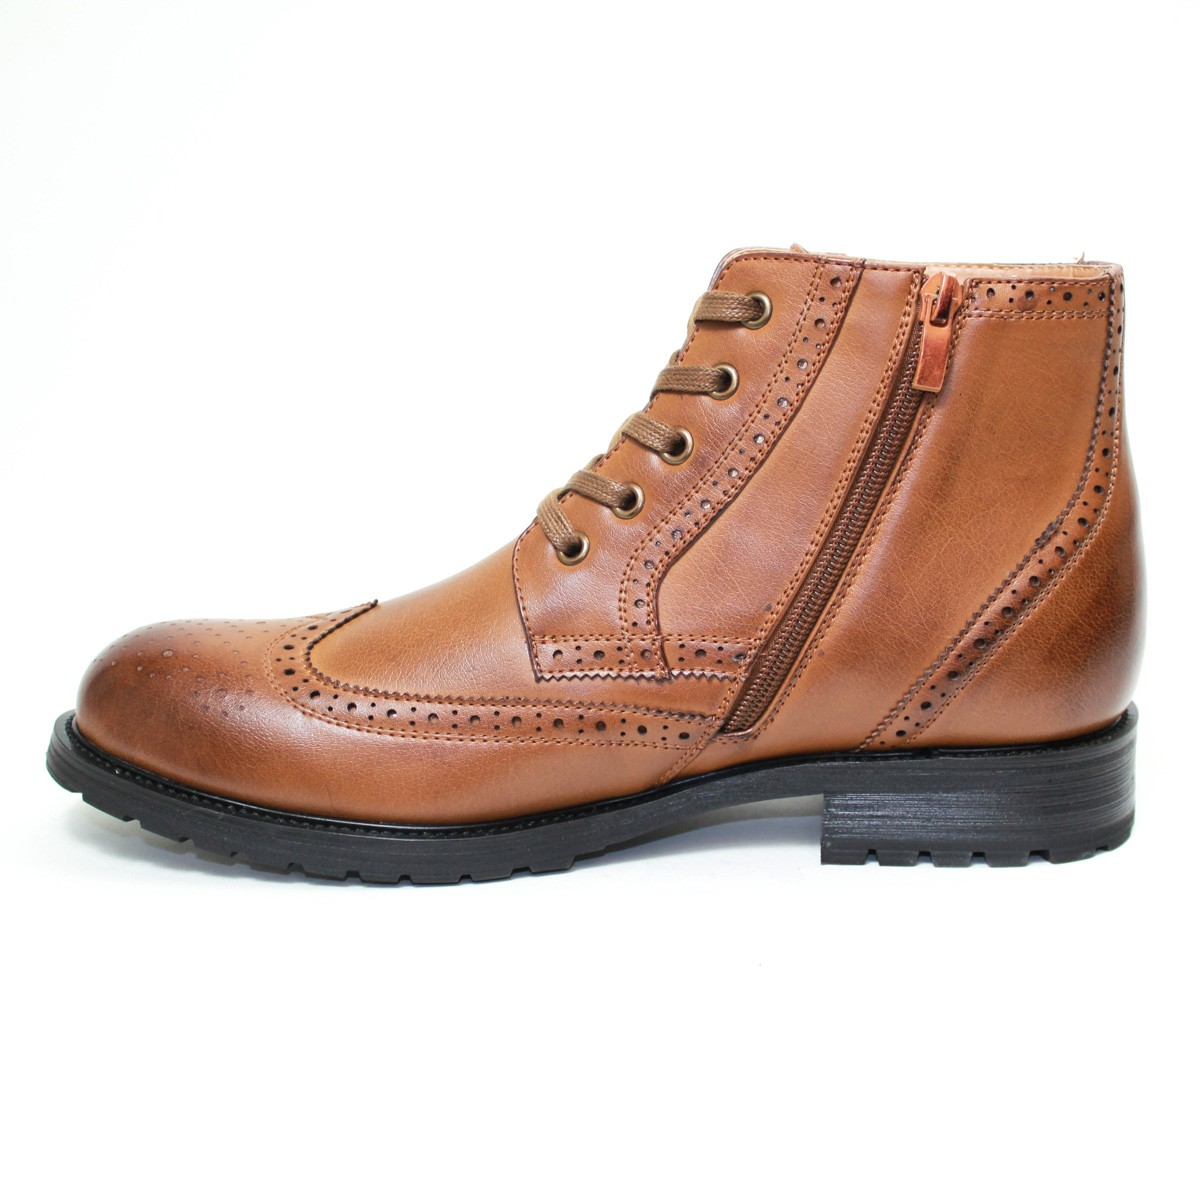 Mens Zip Up Boots z9kSEZho